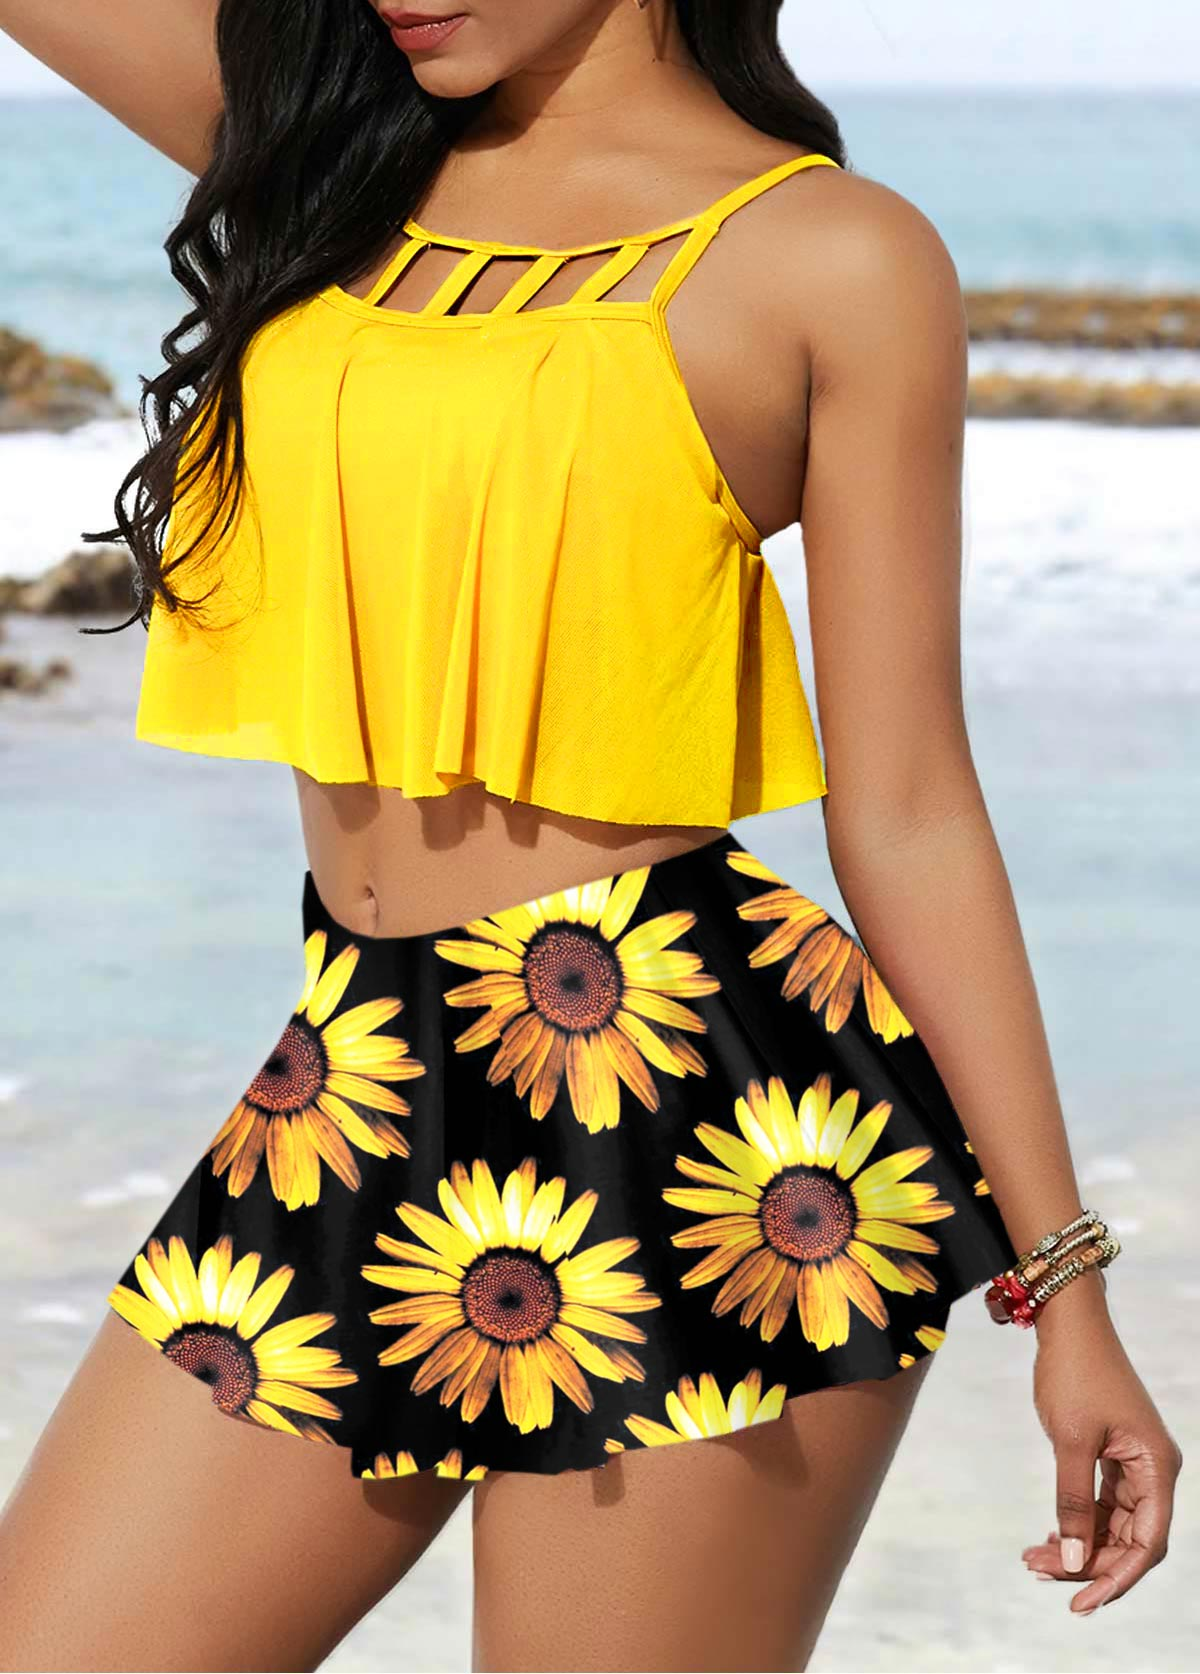 Spaghetti Strap High Waisted Sunflower Print Bikini Set